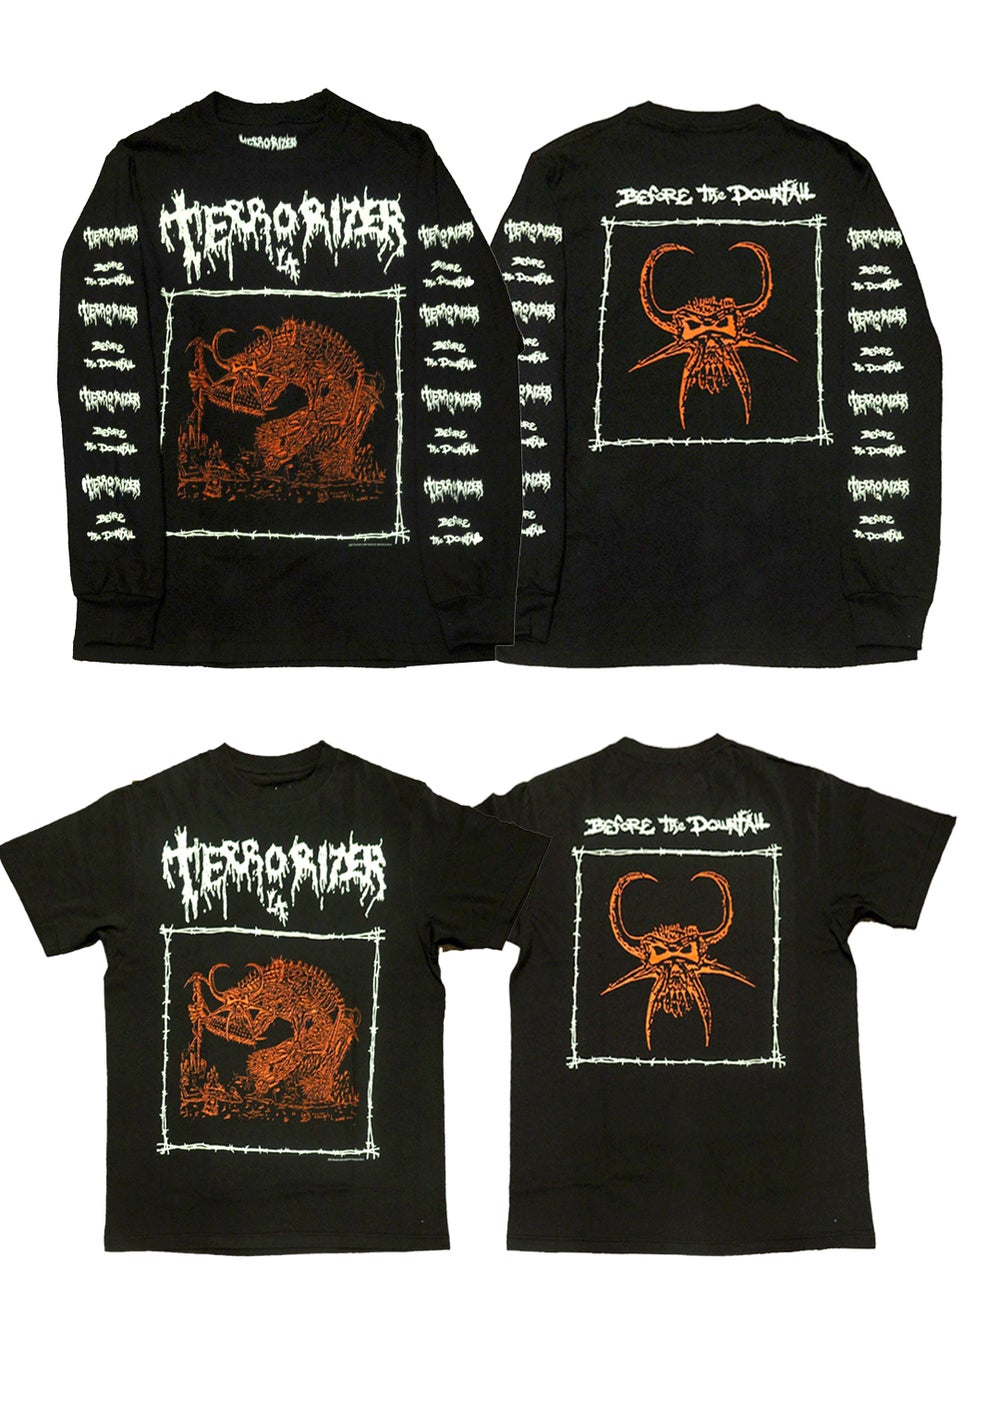 Terrorizer - Before The downfall